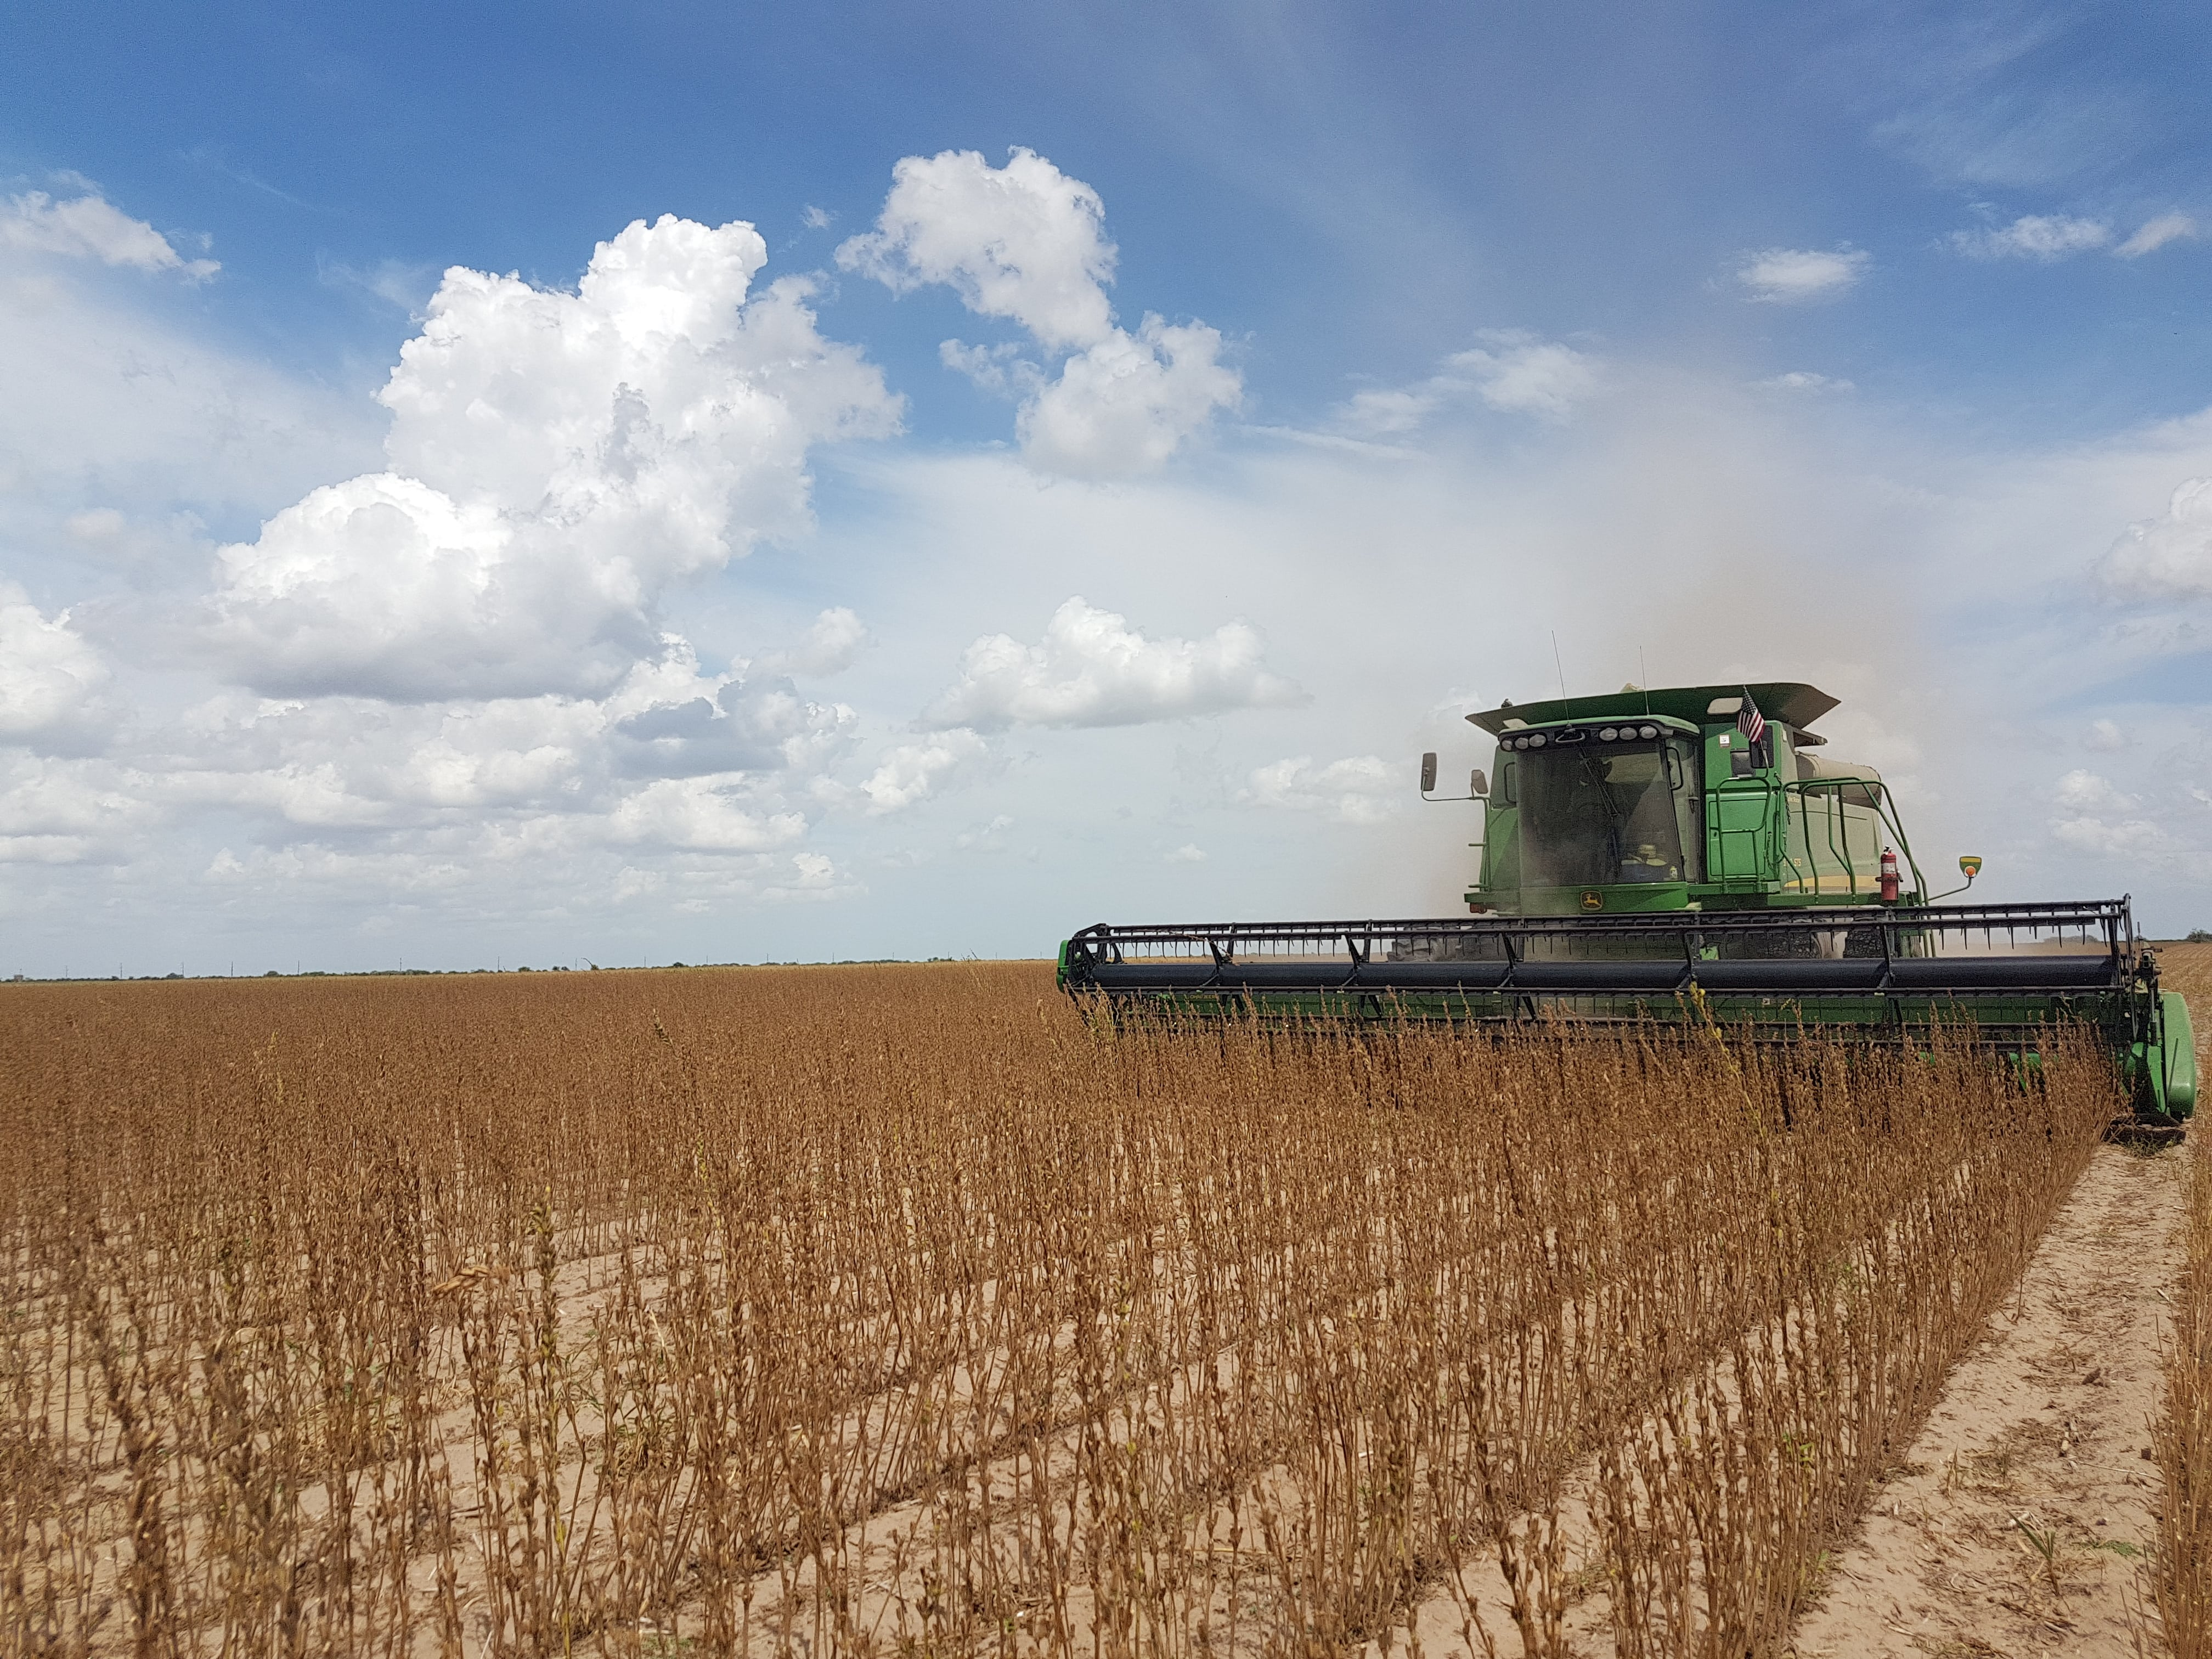 A field of sesame seeds with a farmer